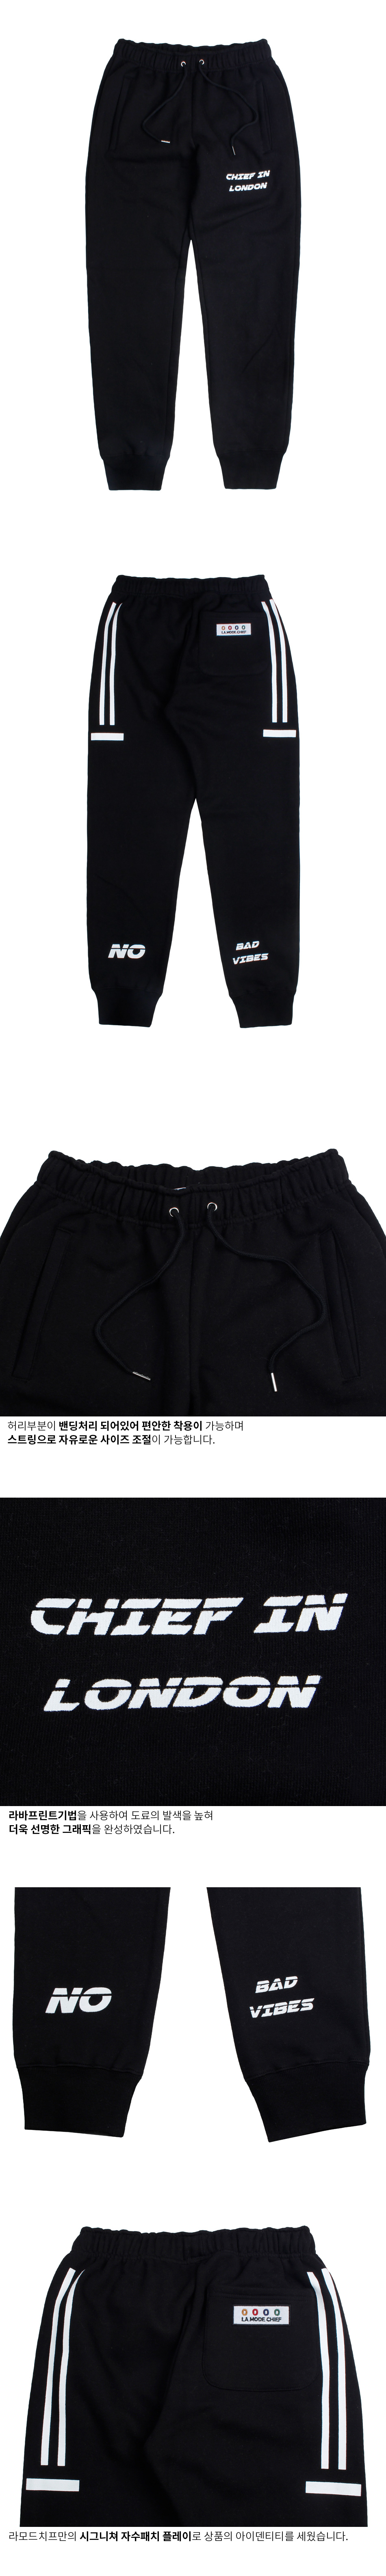 라모드치프 LAMC BACK LOGO TRAINING JOGGER PANTS (BLACK)